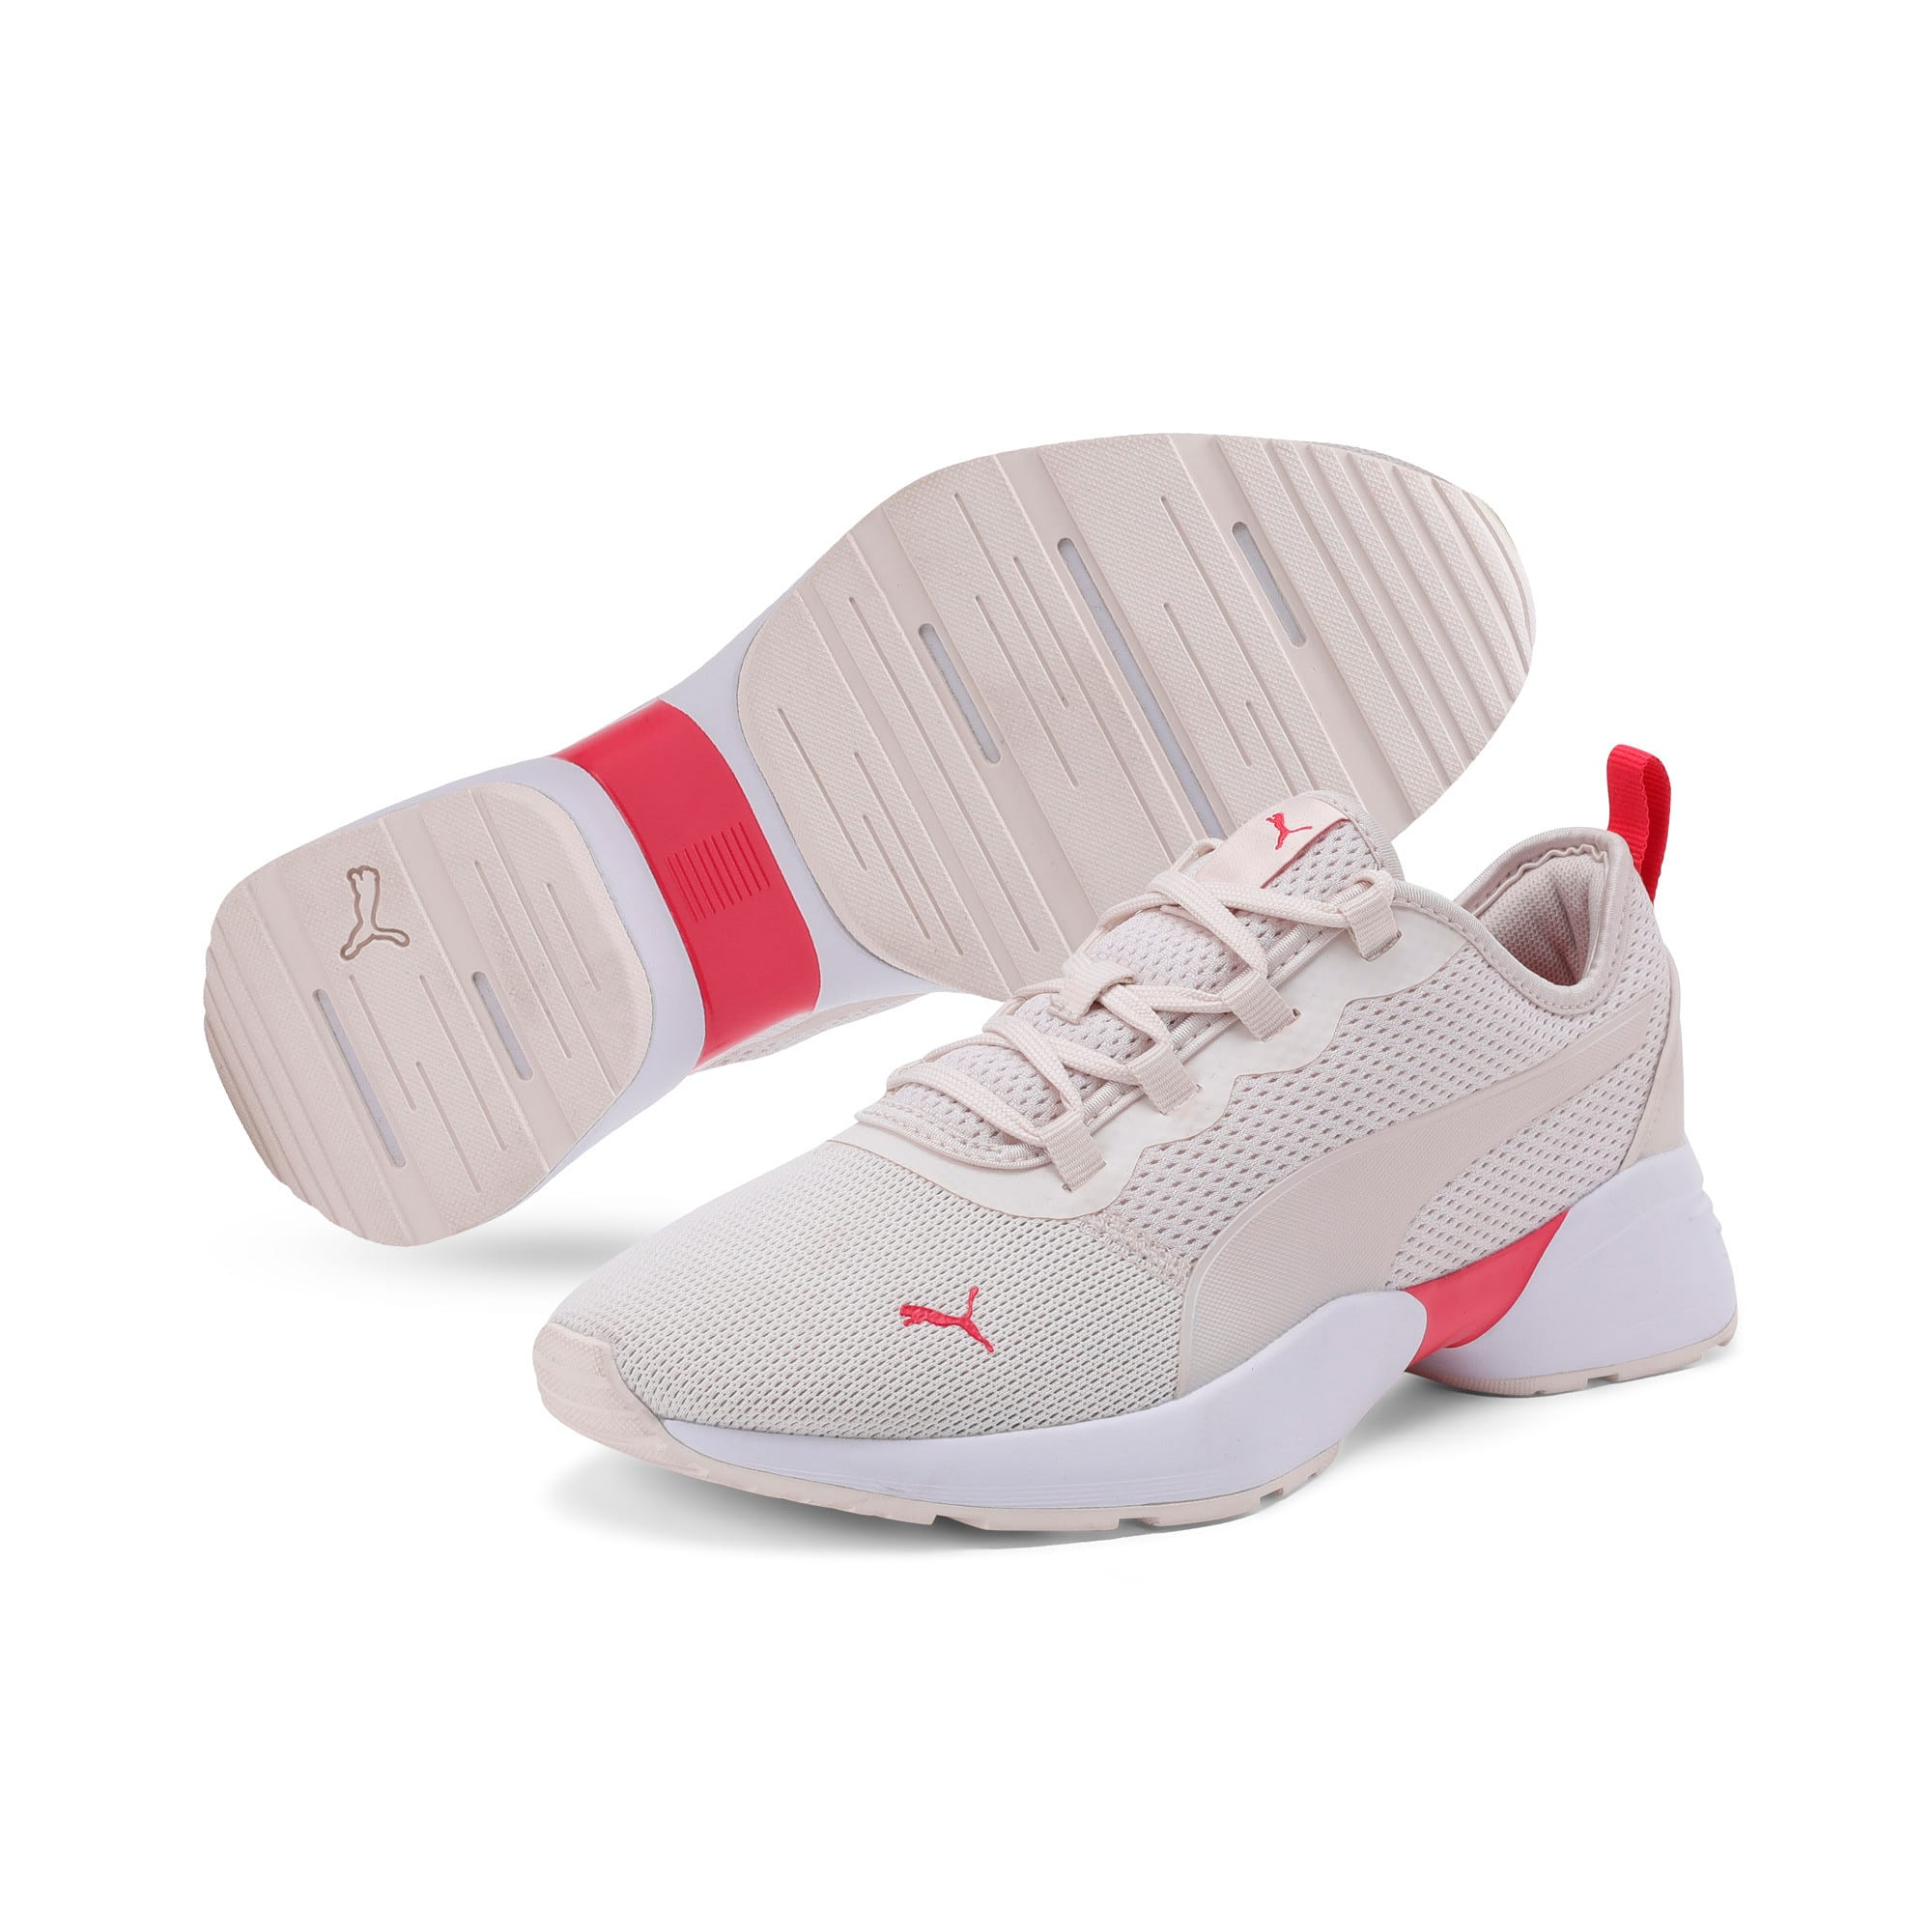 Thumbnail 2 of Sirena Sport Women's Trainers, Pastel Parchment-Nrgy Rose, medium-IND